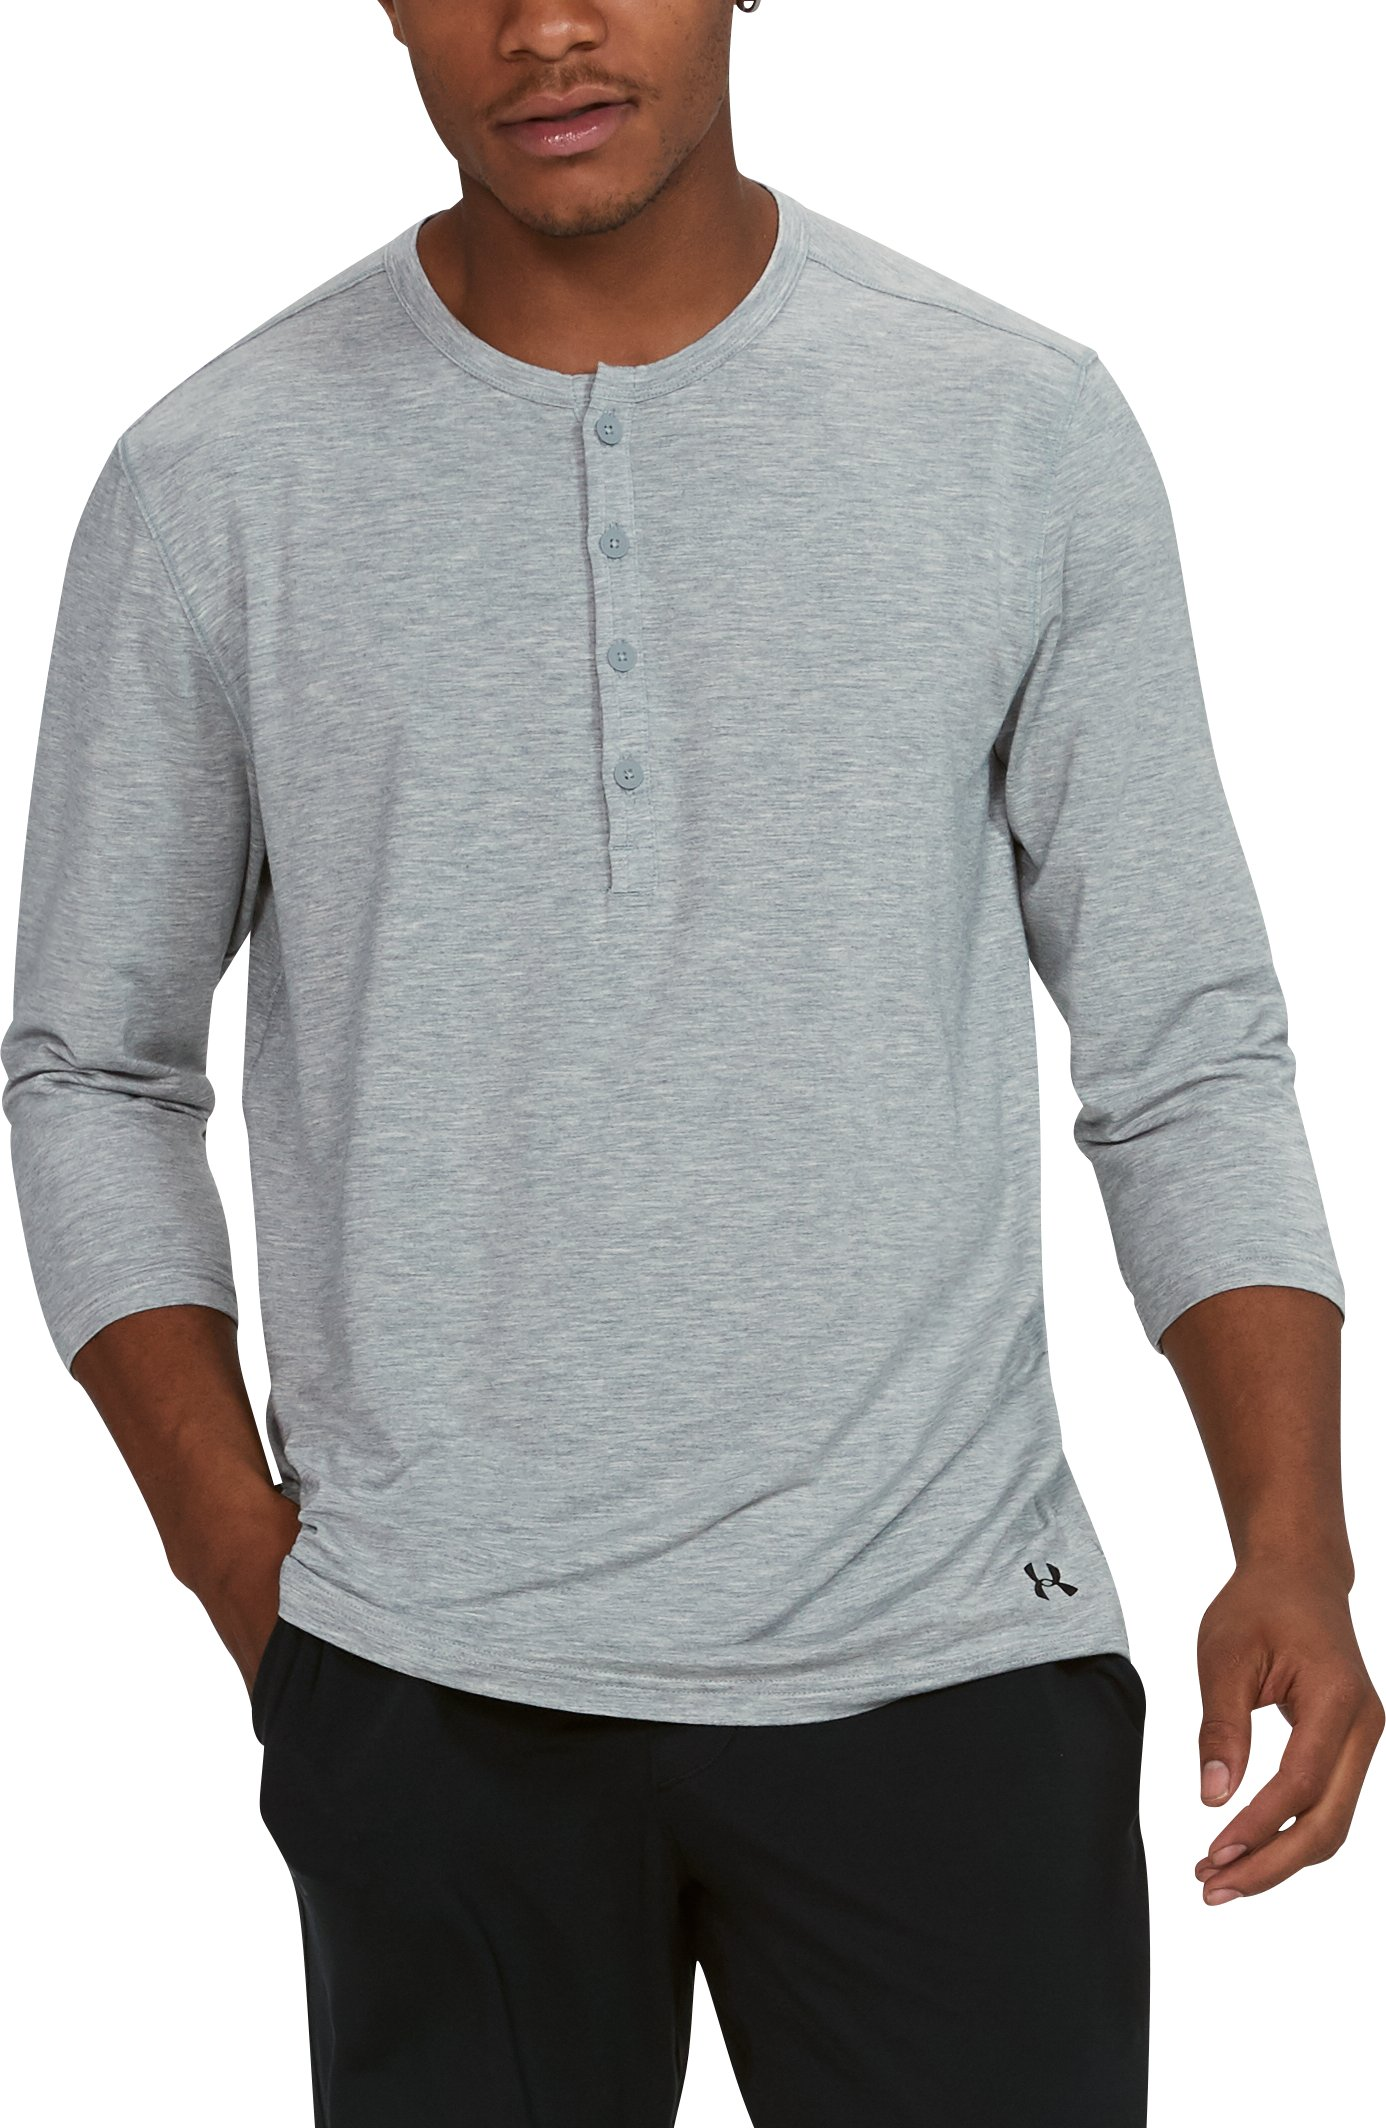 Men's Athlete Recovery Ultra Comfort Sleepwear Henley, True Gray Heather,